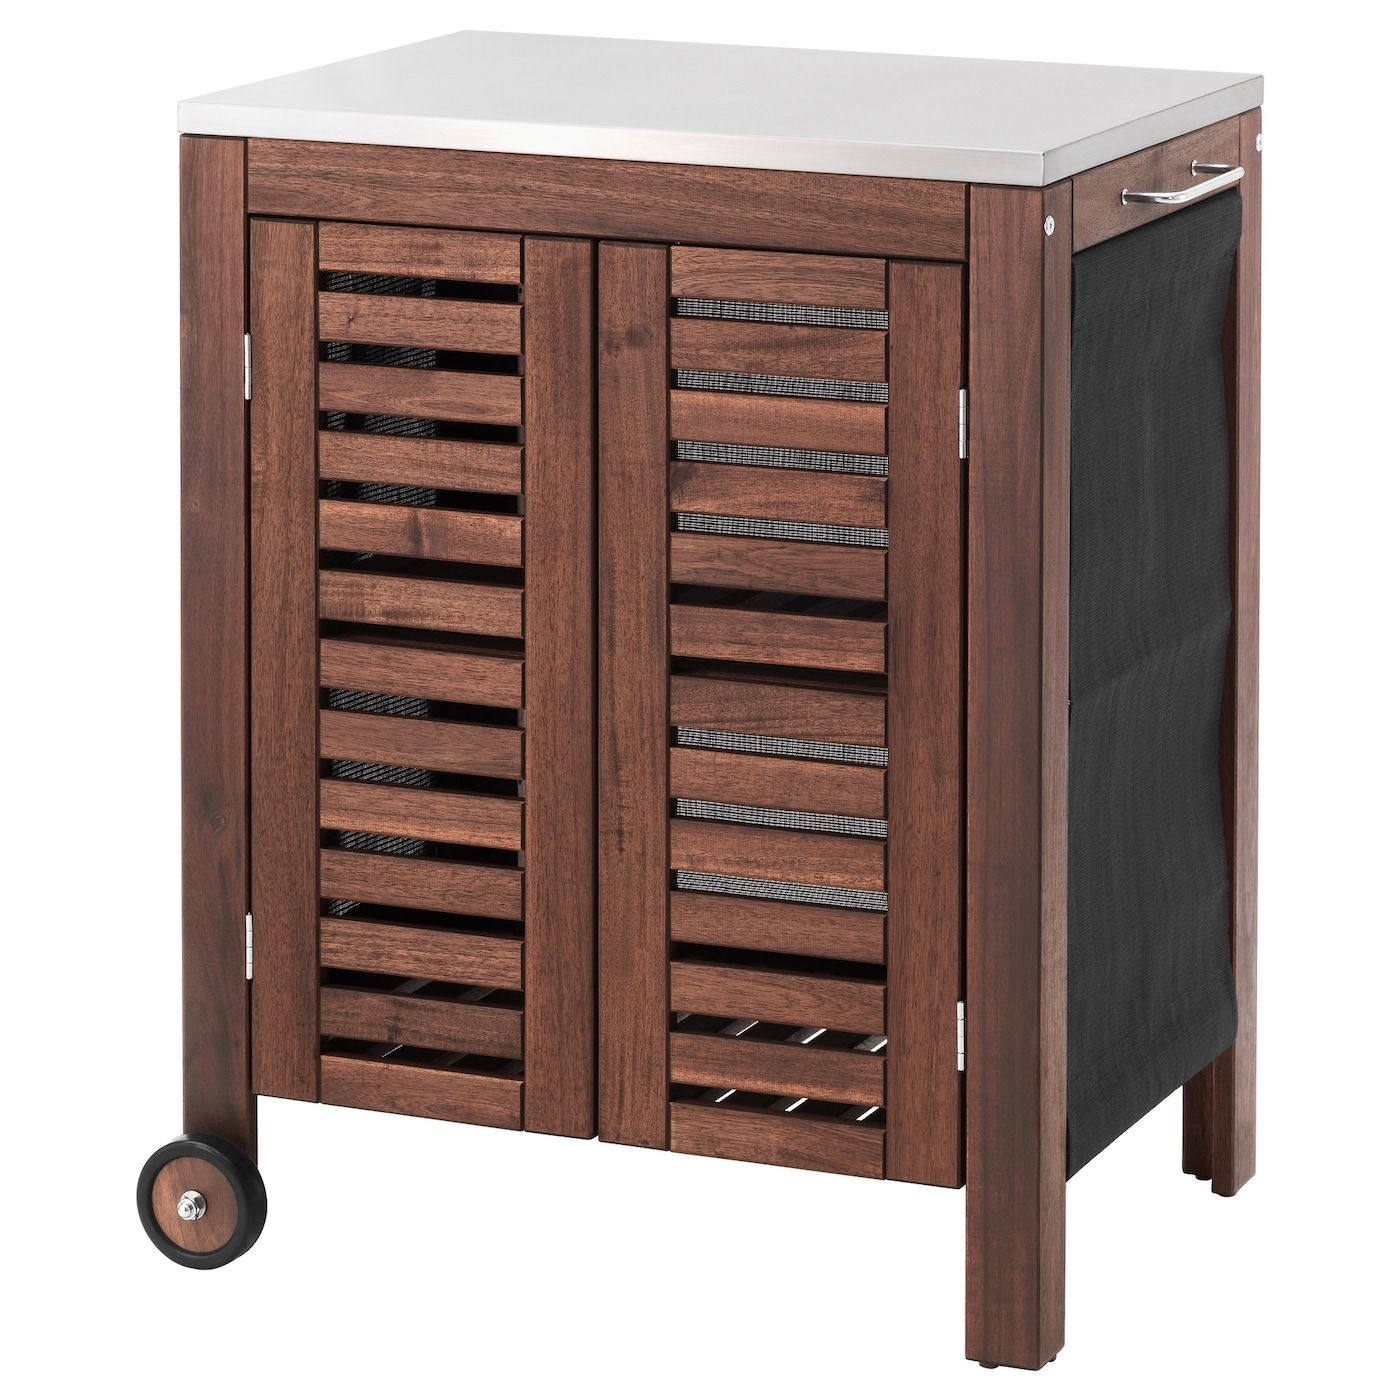 Applaro Klasen Storage Cabinet Outdoor Brown Stained Stainless Steel Color 30 3 8x22 7 8 Storage Cabinet Ikea